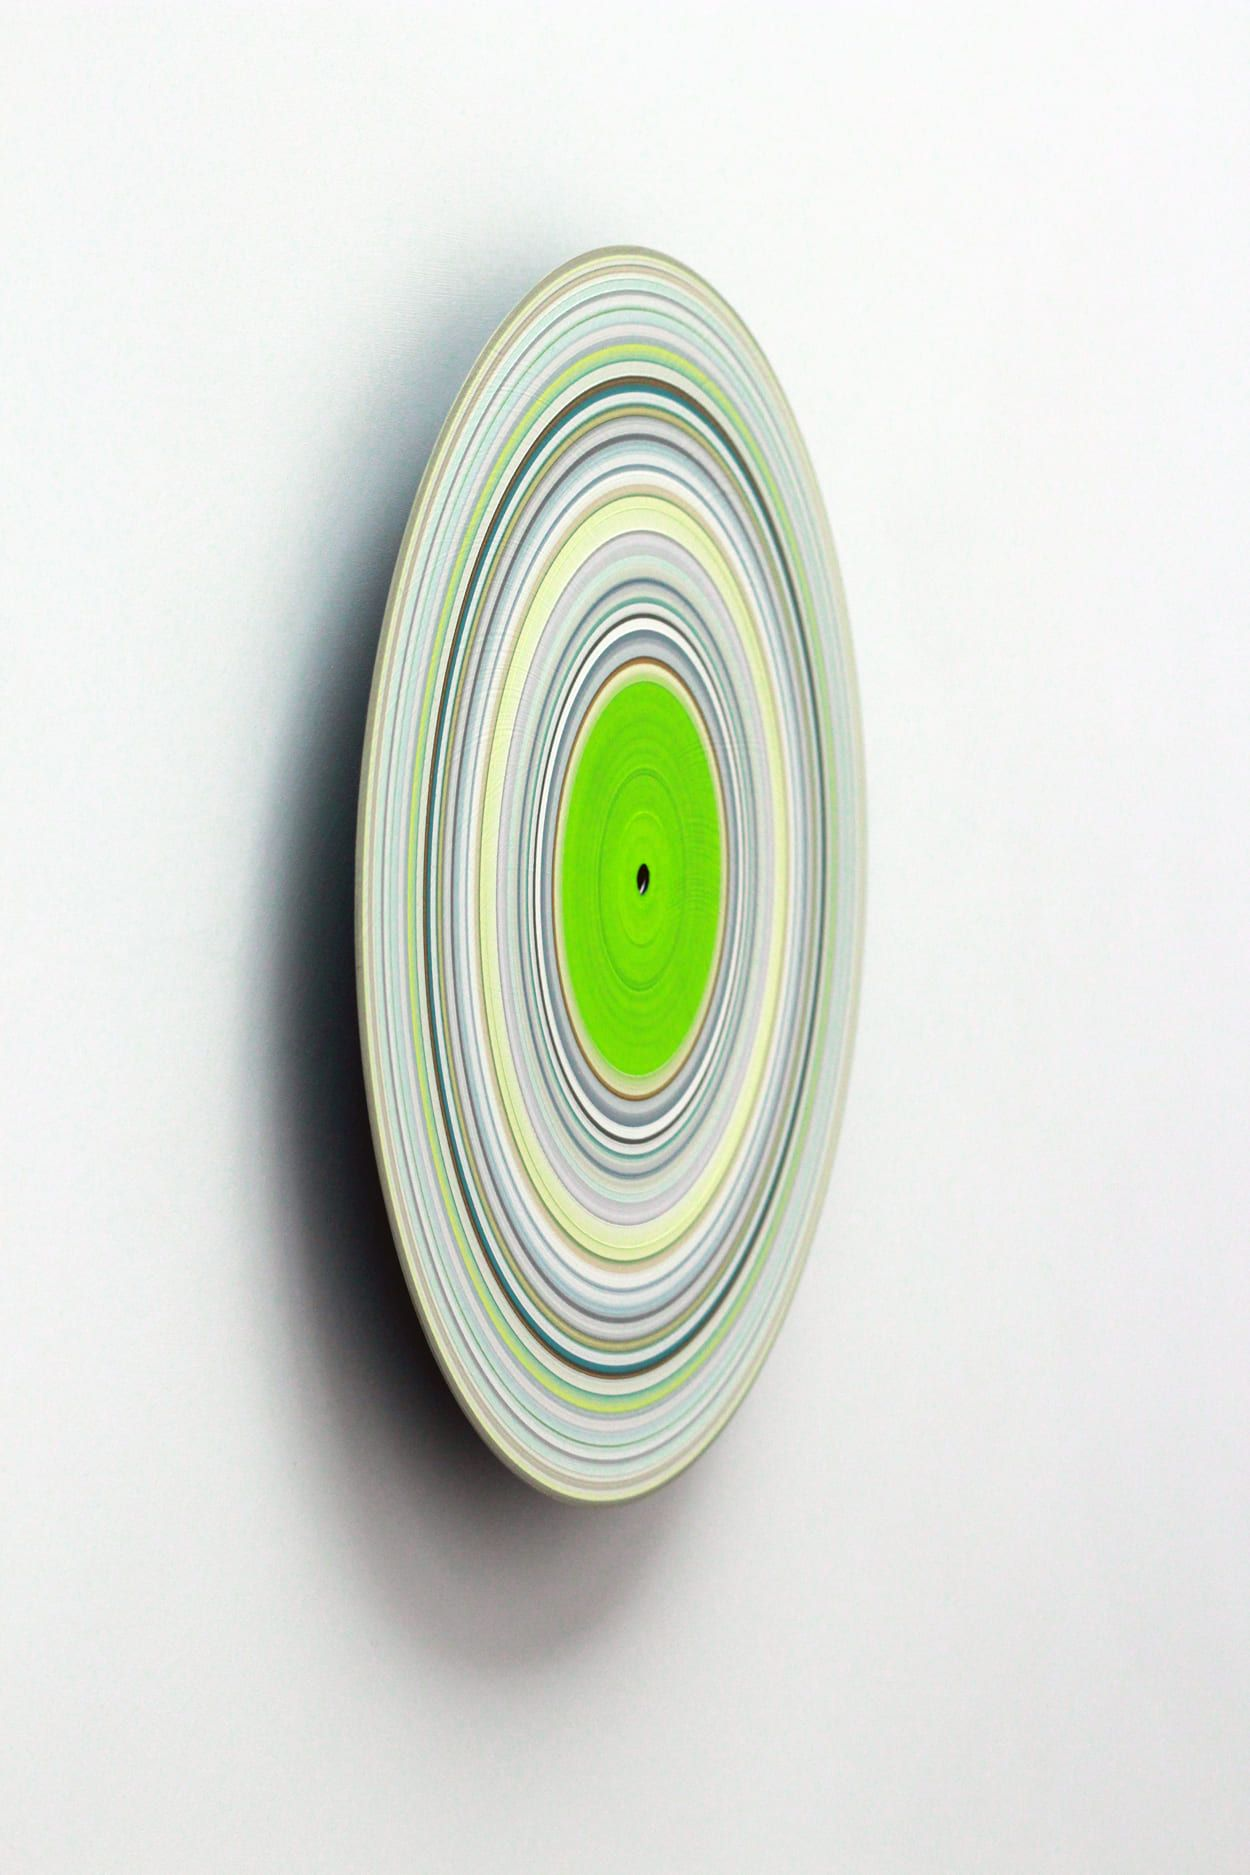 Green Edition No.15,Doris Marten,Peinture contemporaine, detail 1